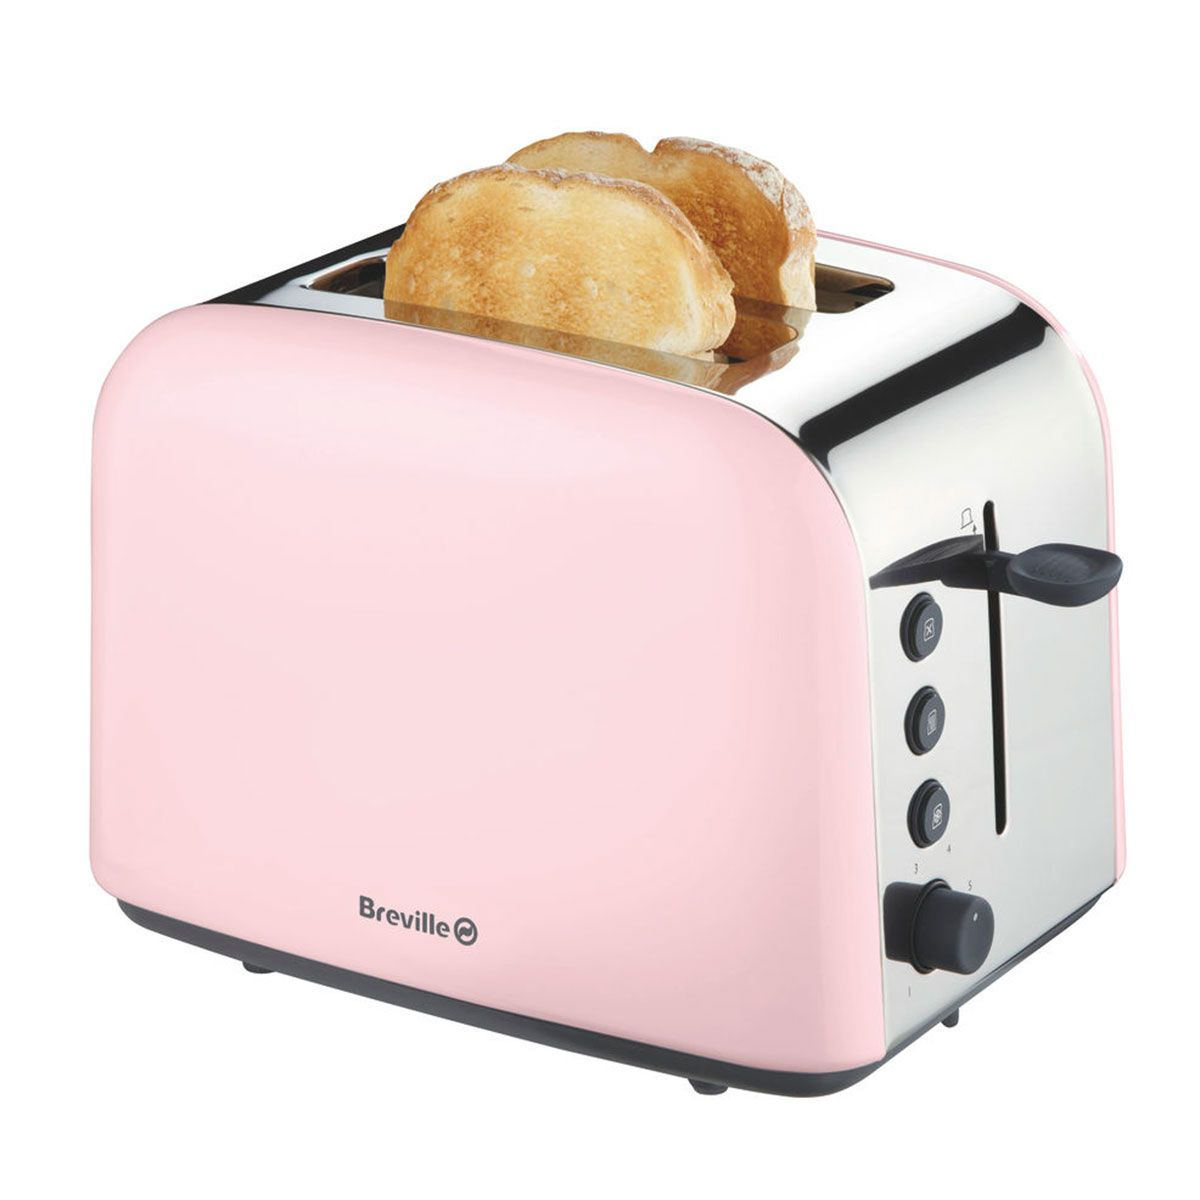 Breville Pick and Mix 2 Slice Toaster